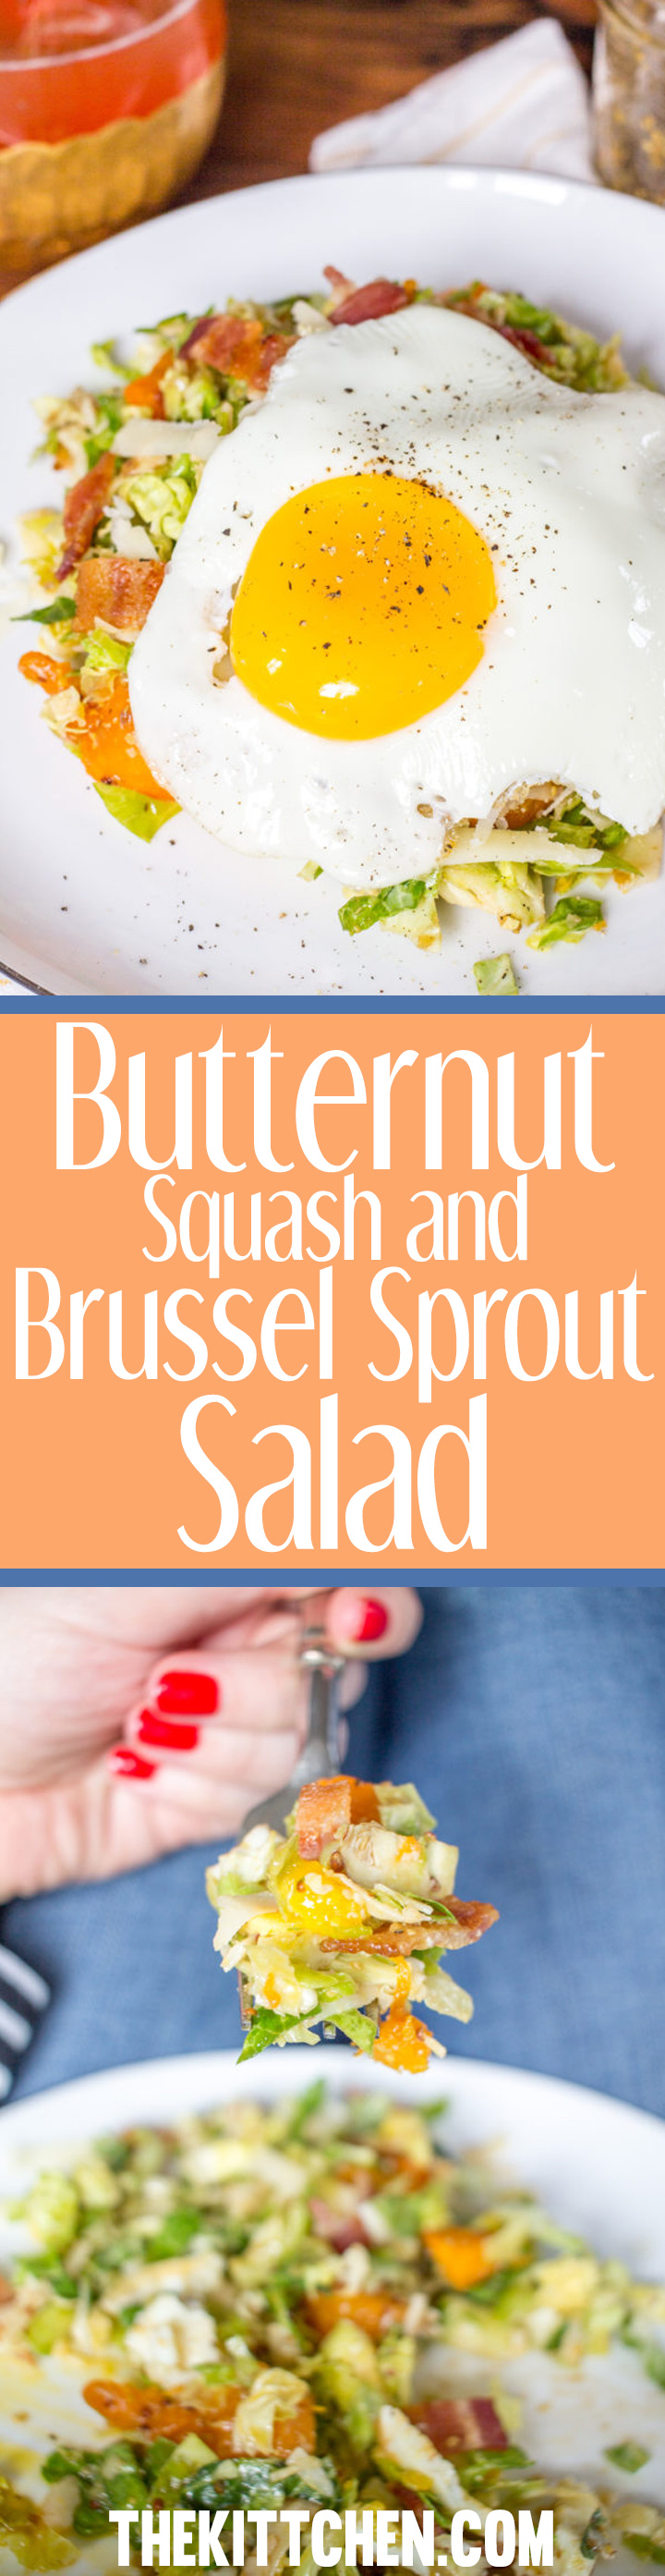 This easy to prepare Butternut Squash and Brussels Sprout Salad is anything but ordinary. It is a salad with bold flavors that makes for an easy weeknight meal.